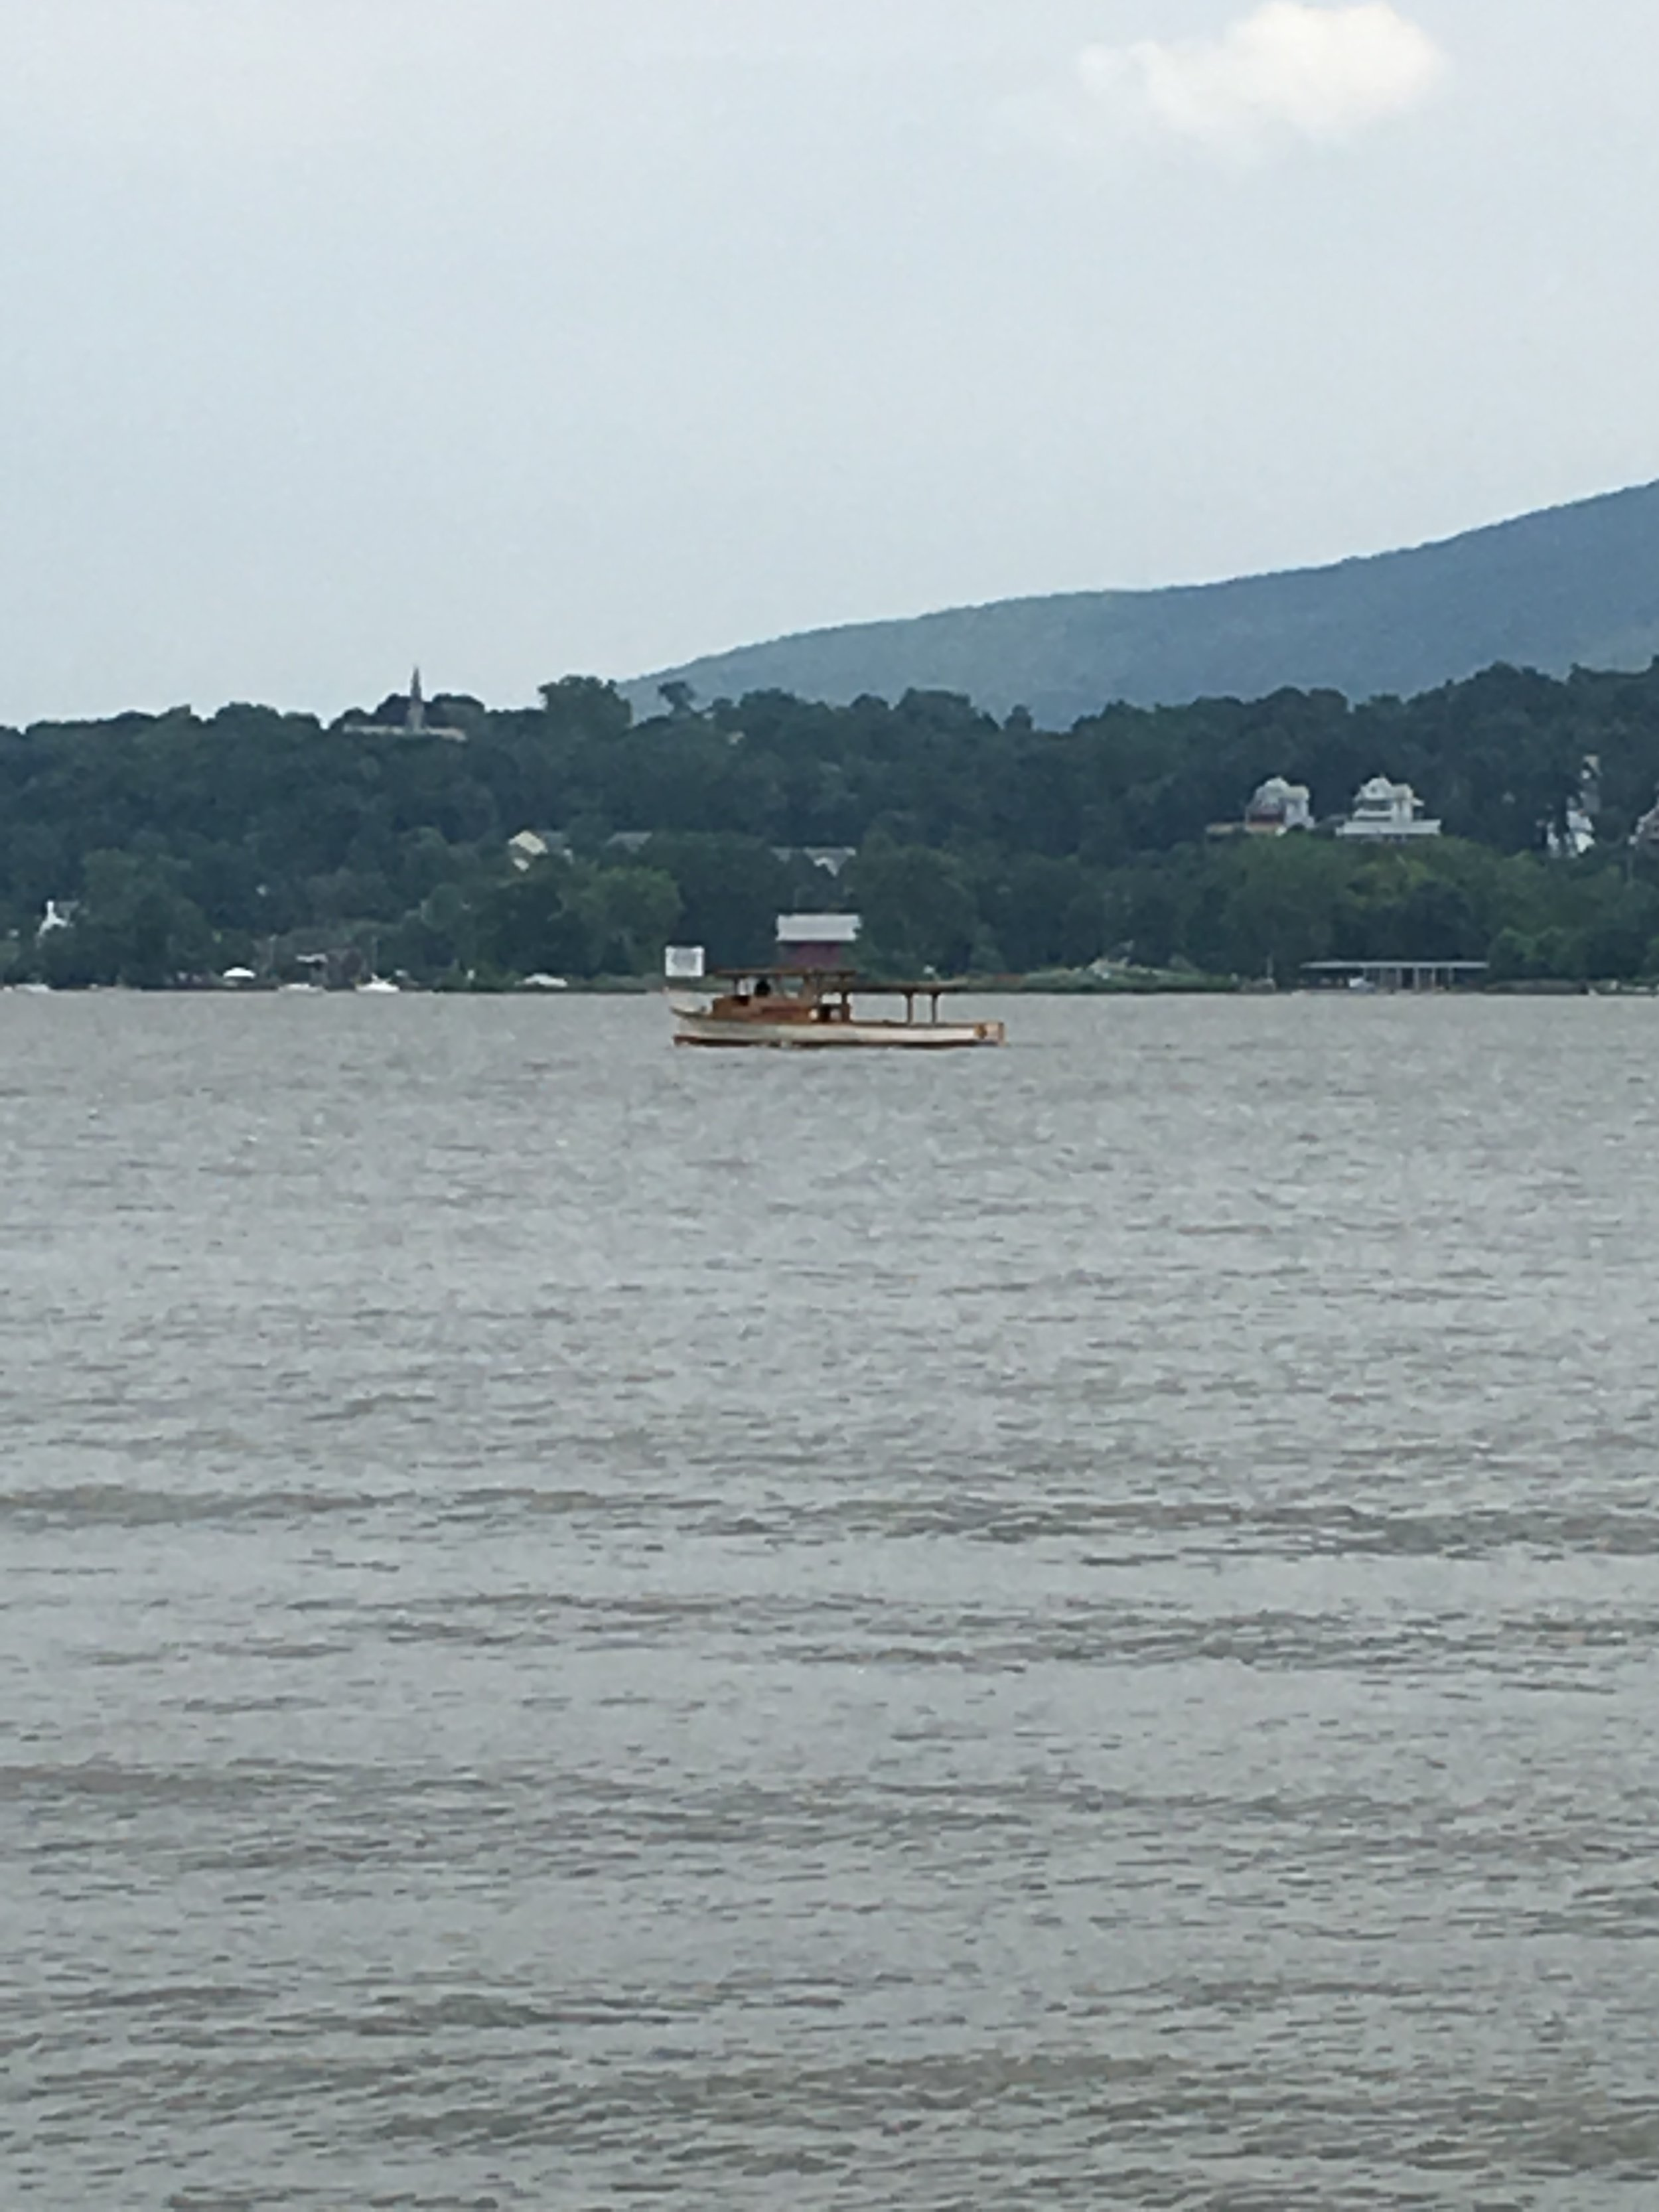 Solar Sal on her way back up to Troy from Newburgh, July 23